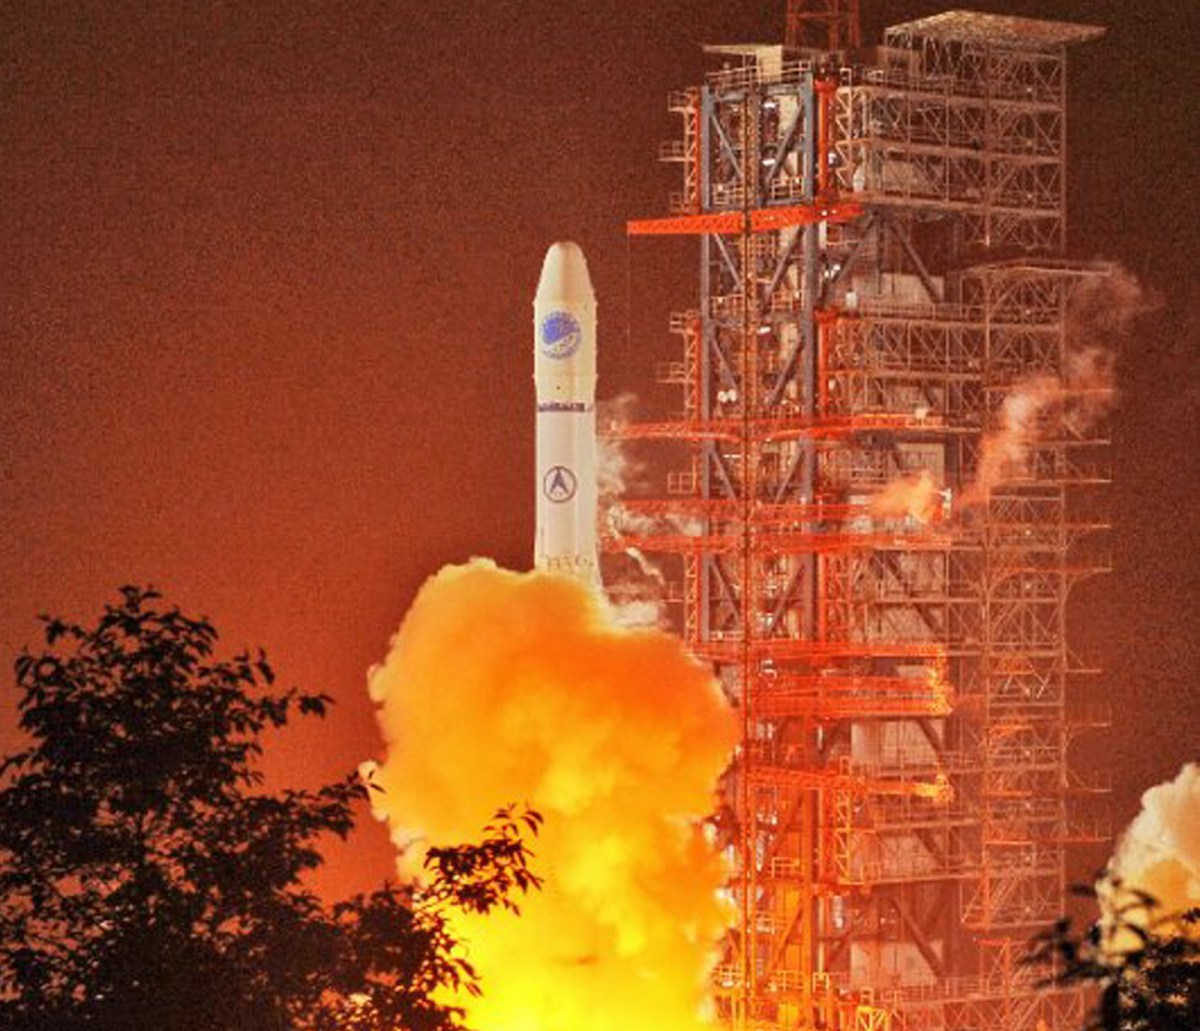 A Long March-3A carrier rocket lifts off from the Xichang Center in China's Sichuan province. Photo: AFP